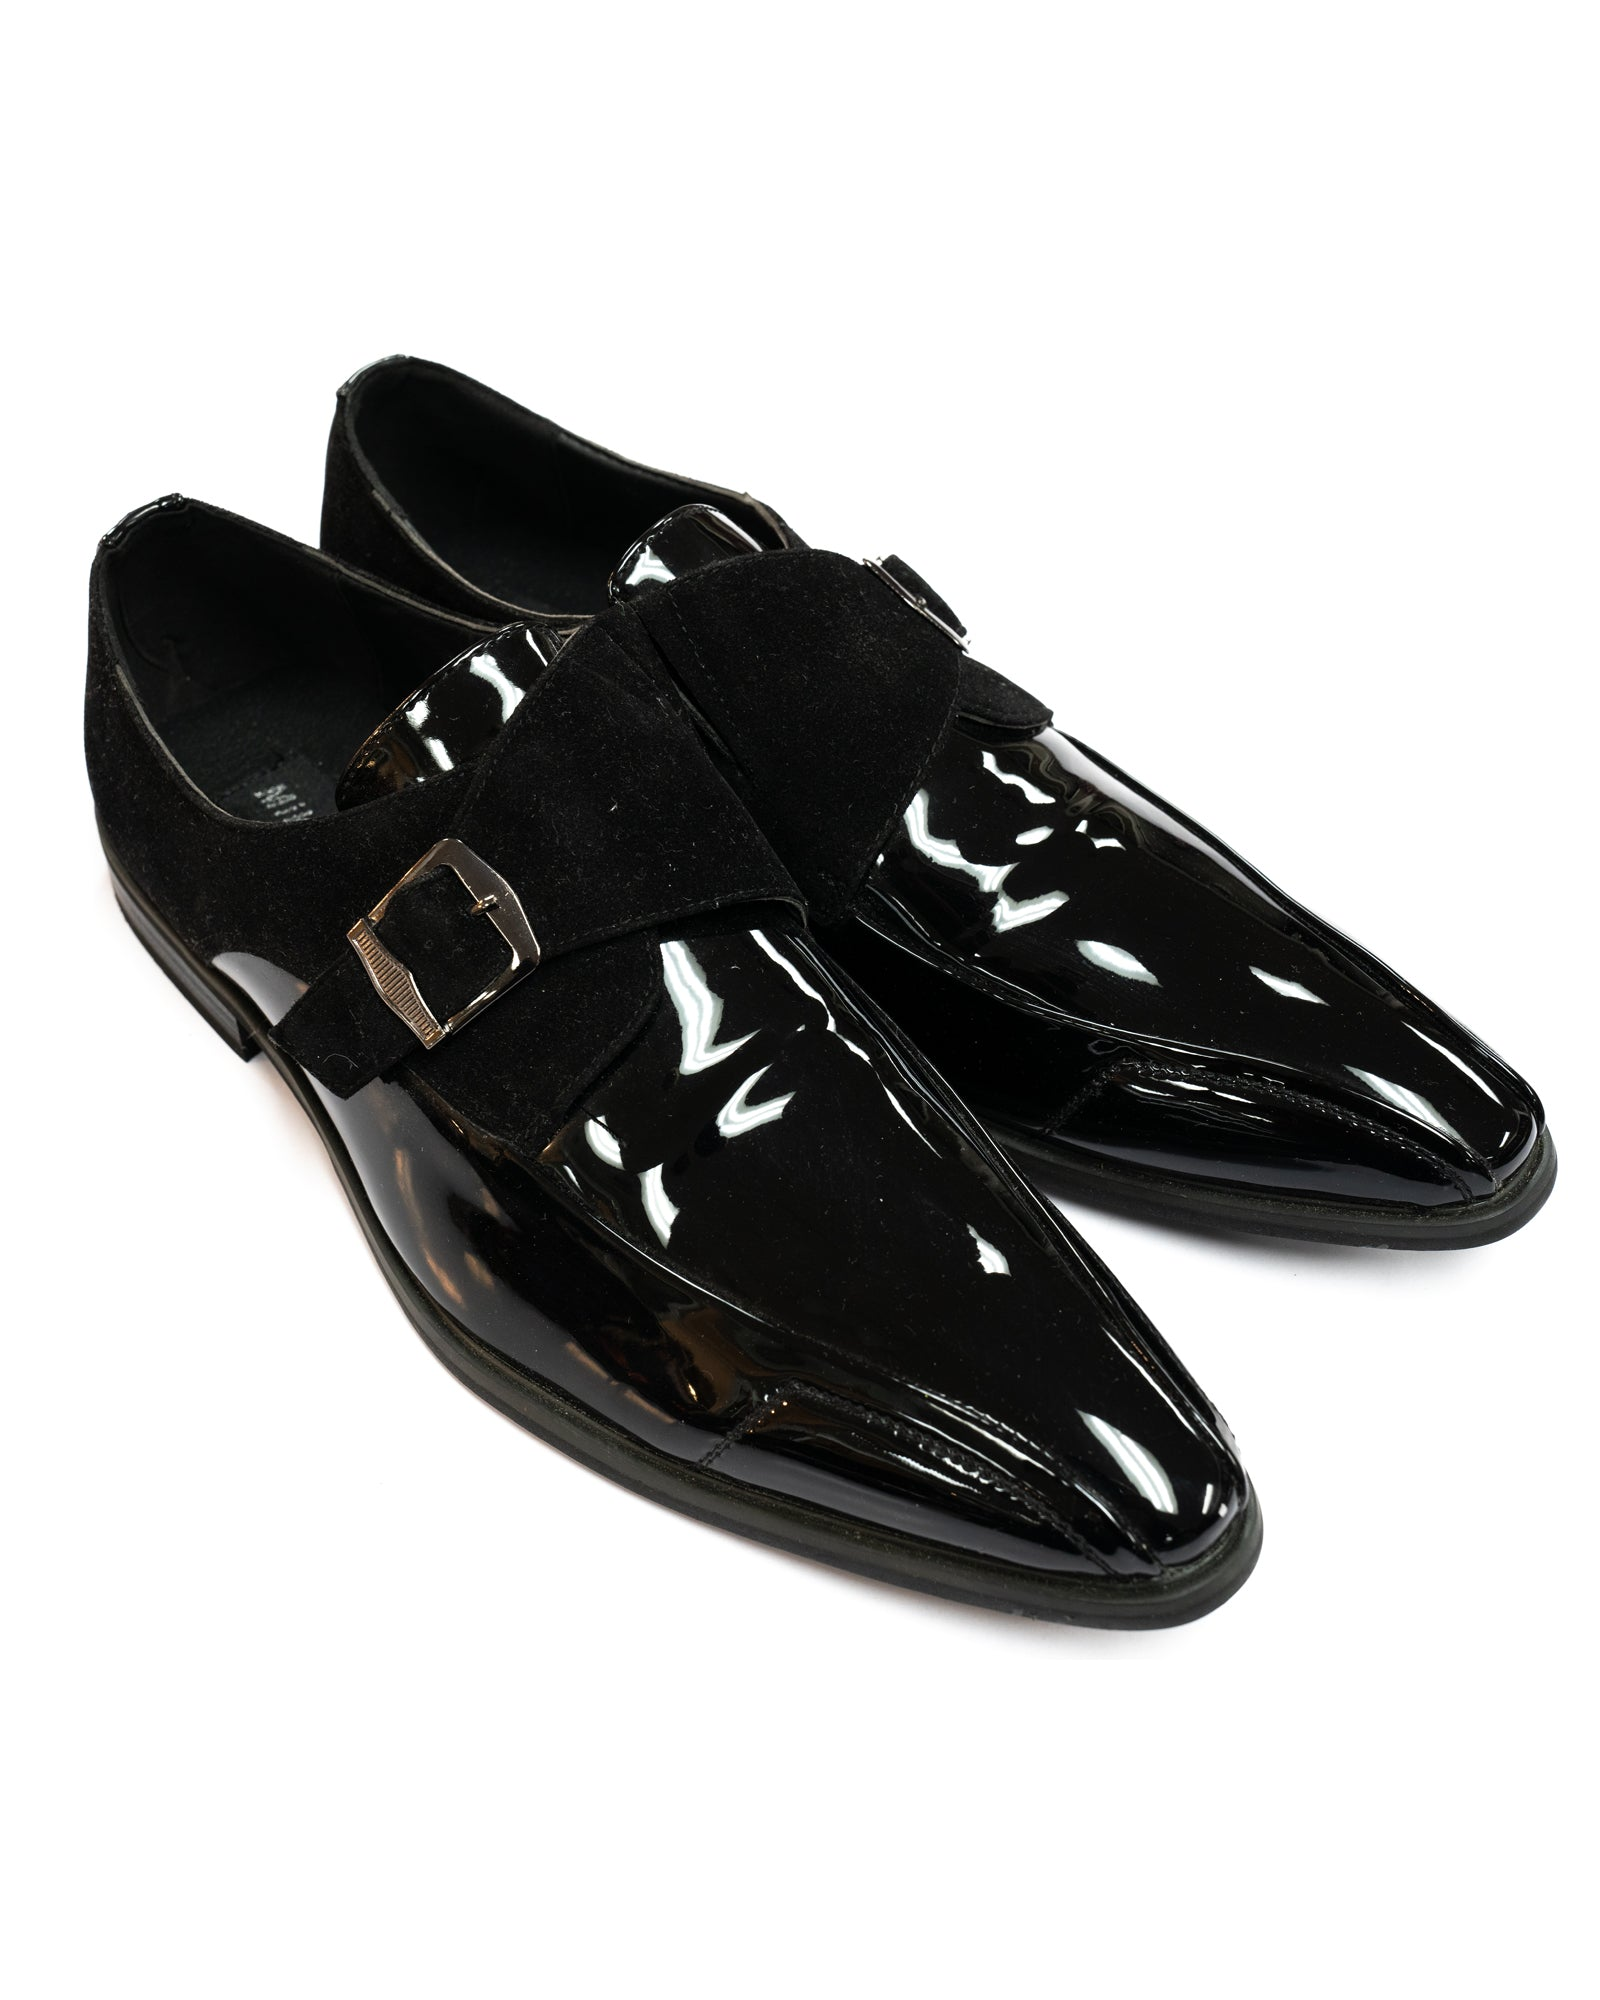 Miko Lotti Formal Monk Strap Shoe in Black - Rainwater's Men's Clothing and Tuxedo Rental